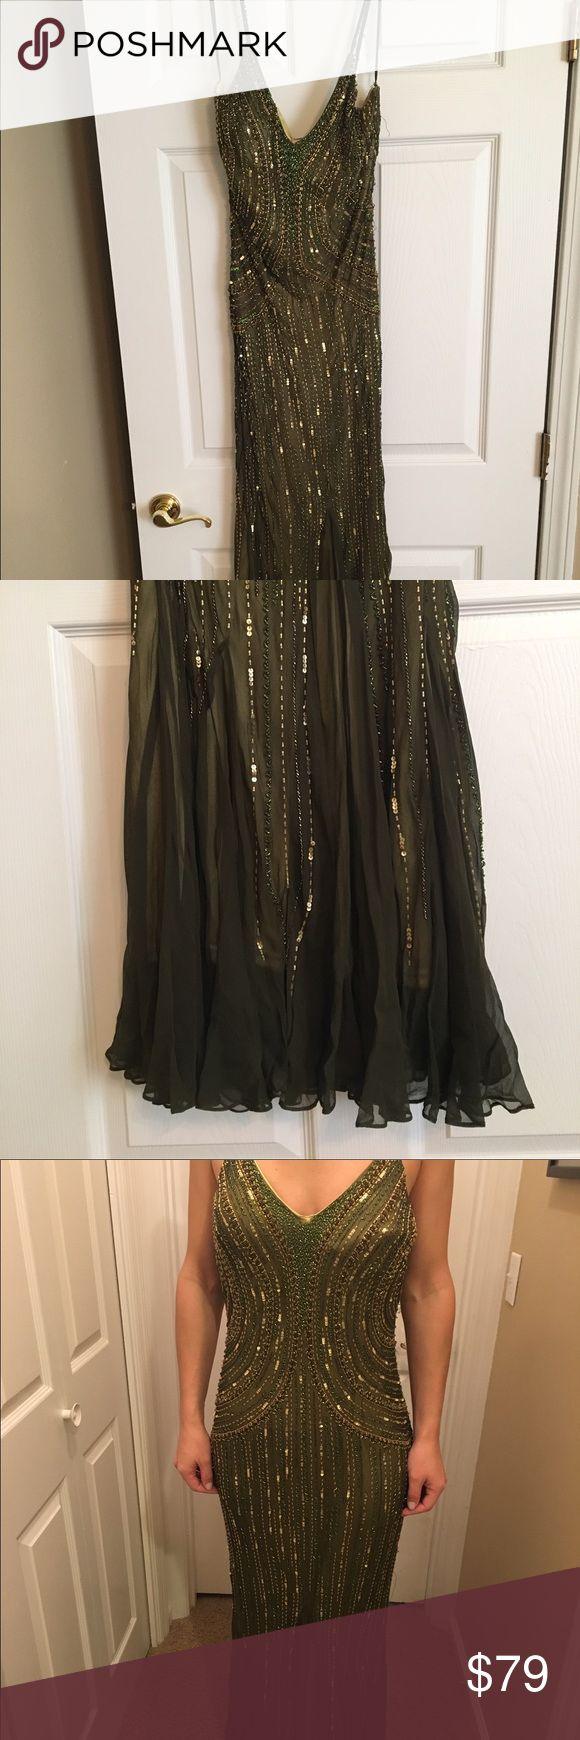 Green sequin evening gown Dark green and gold evening gown. Never been worn, but is missing some beadwork on one strap and has imperfection as depicted in last pic. Make me an offer! Dresses